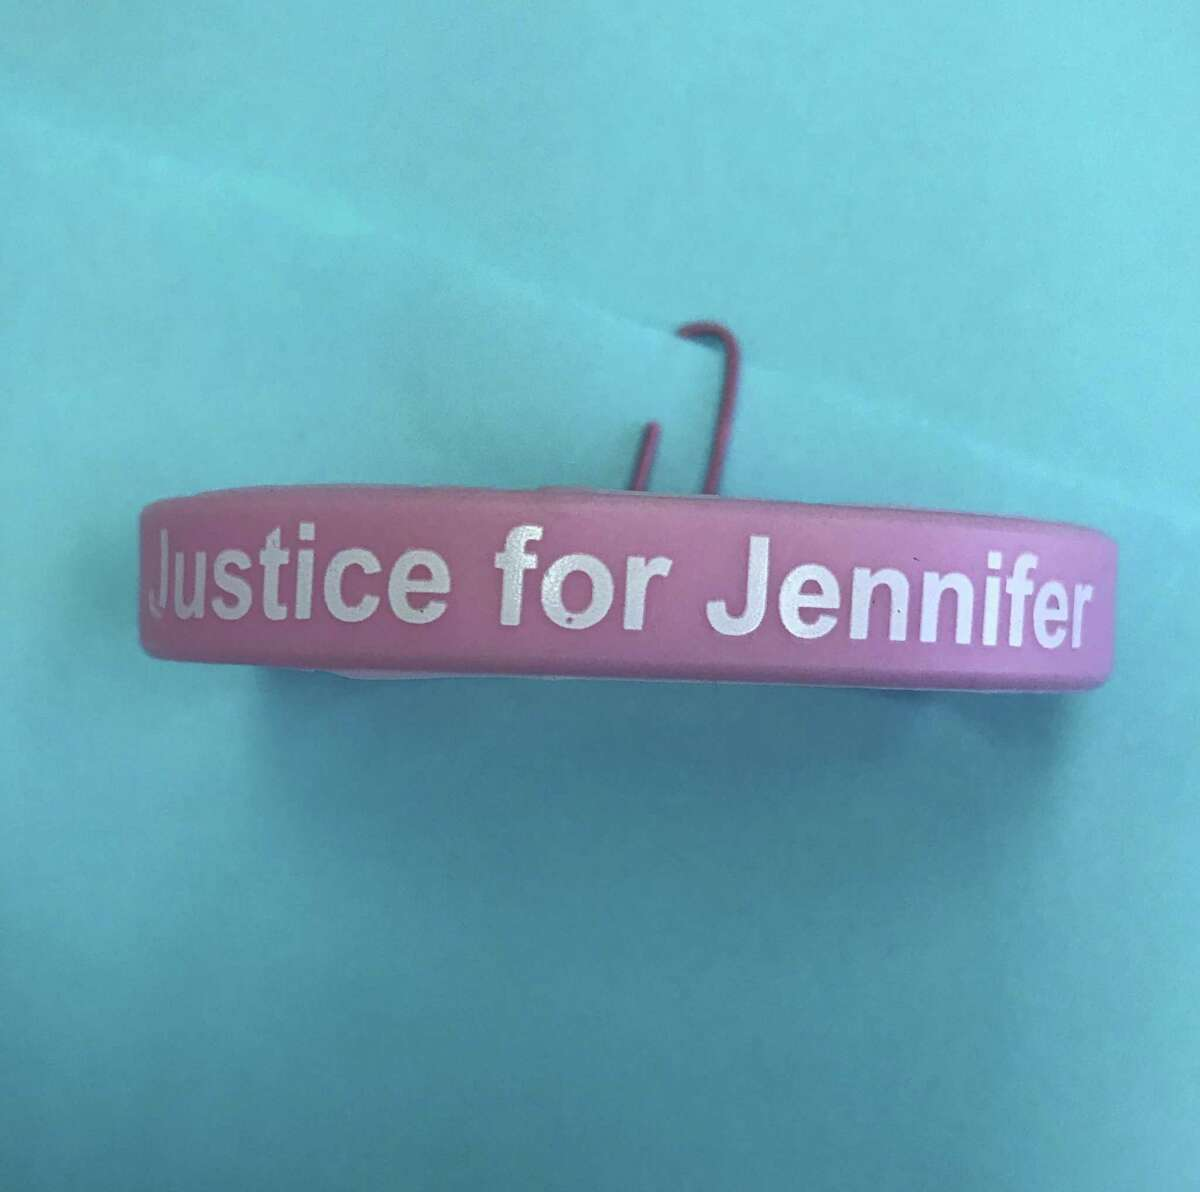 Bracelets created by a Norwalk lawyer raising awareness of Jennifer Dulos' disappearance.